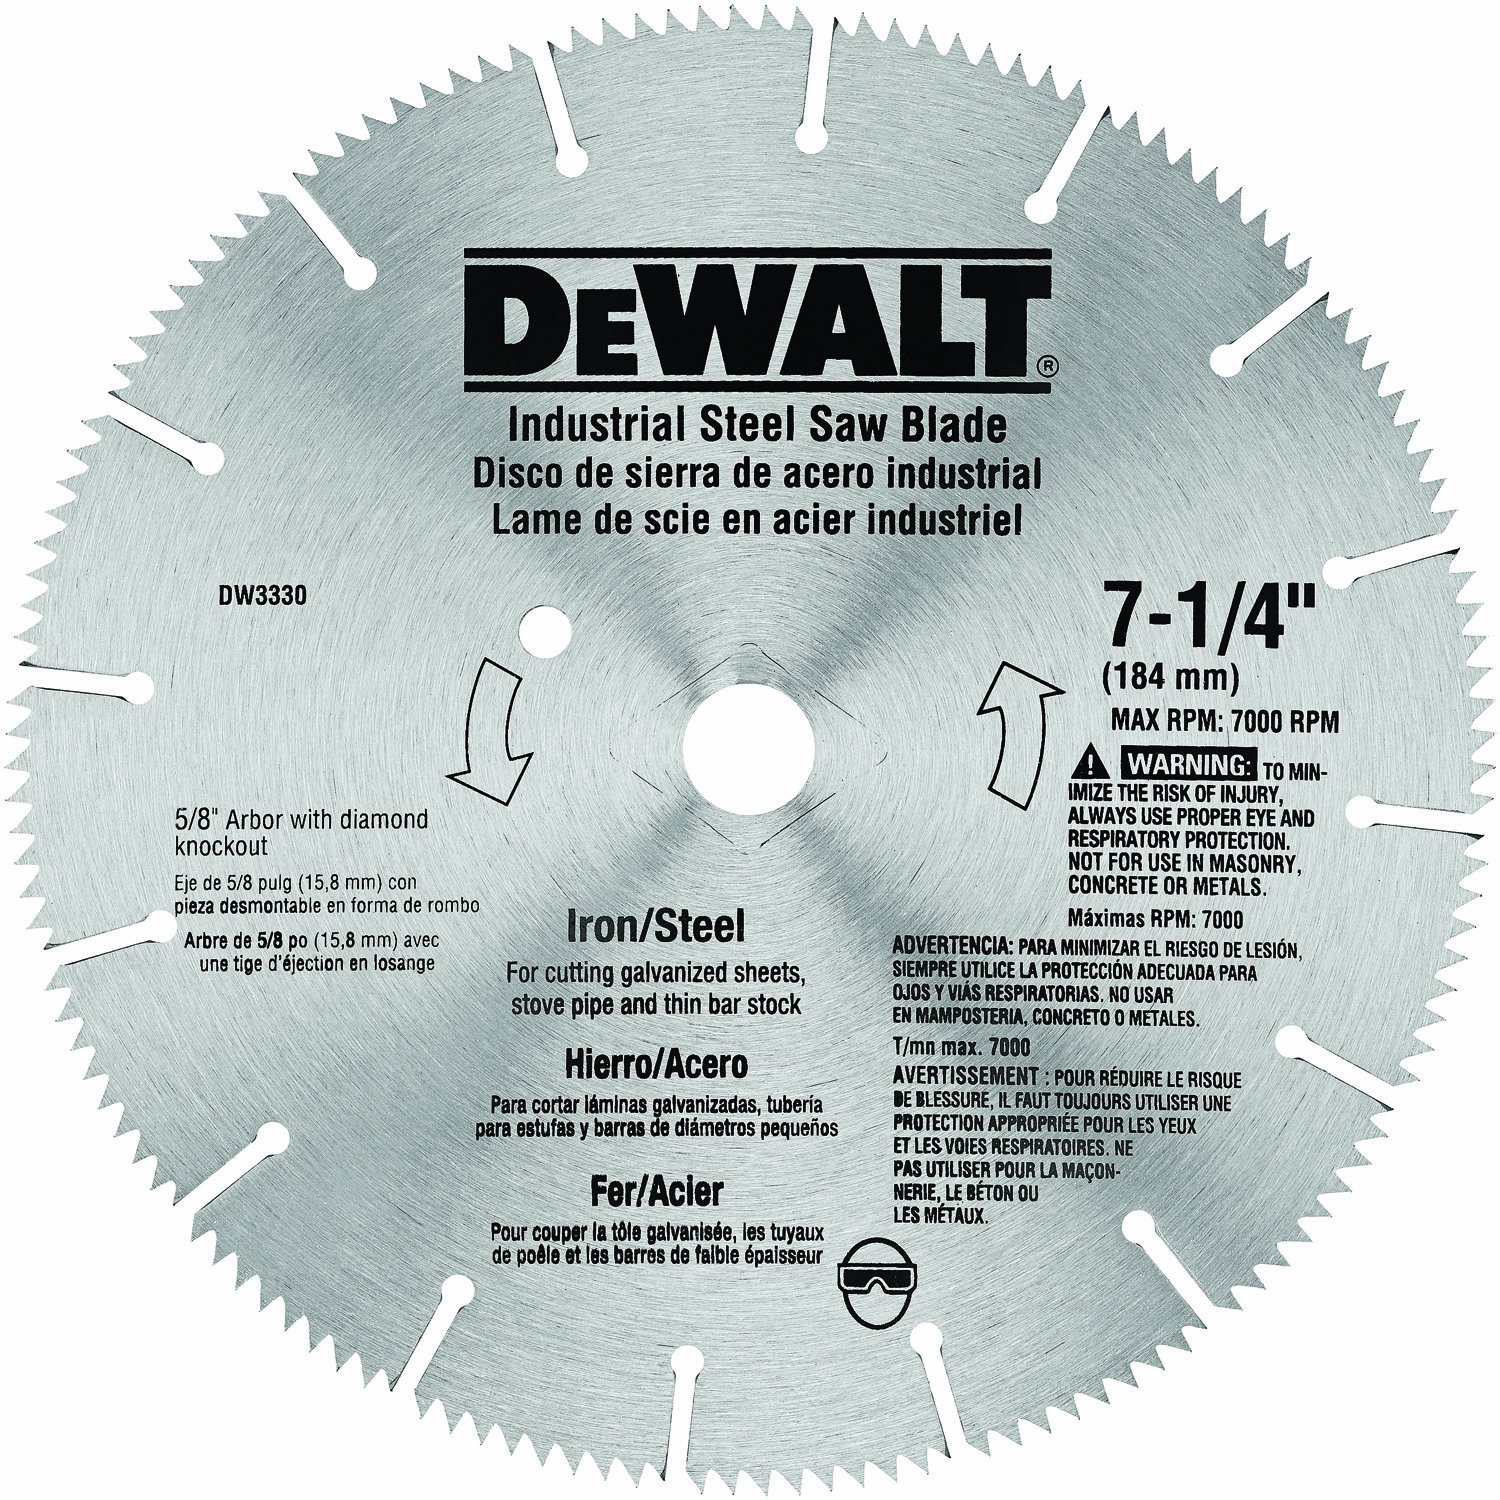 Dewalt dw3330 7 14 inch iron and steel cutting segmented saw blade dewalt dw3330 7 14 inch iron and steel cutting segmented saw blade with 58 inch and diamond knockout arbor circular saw blades amazon keyboard keysfo Images